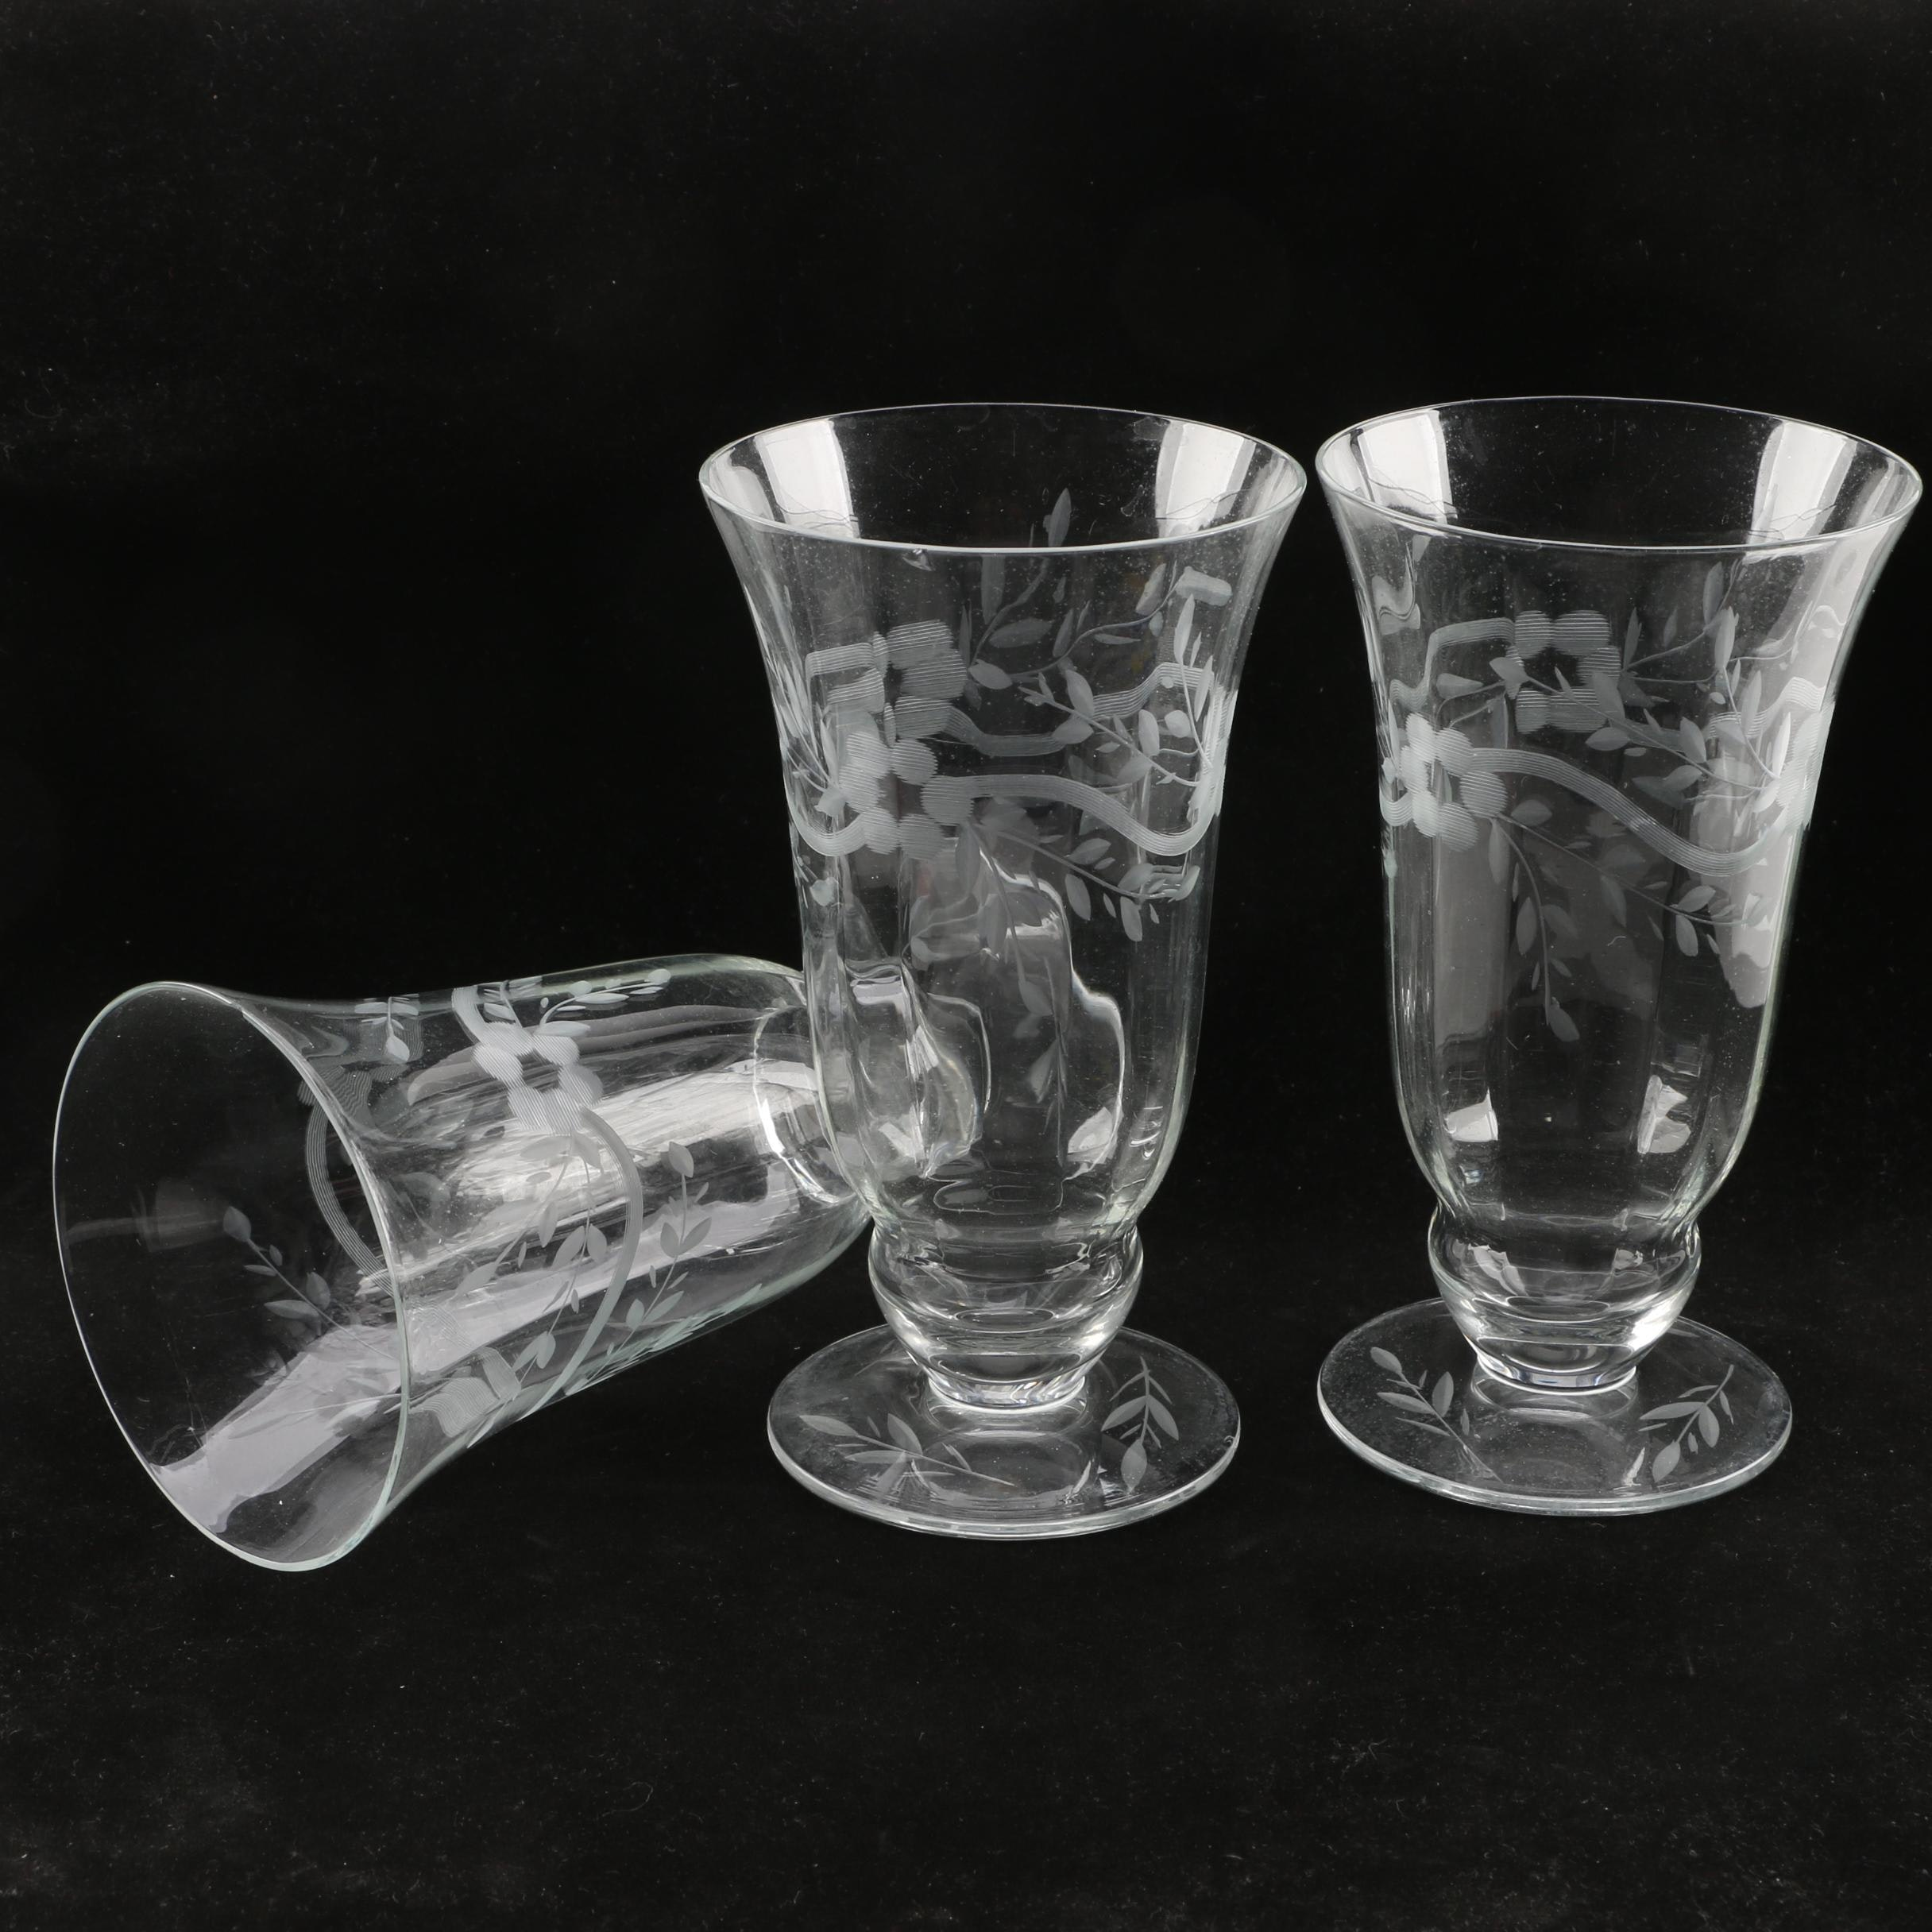 Collection of Etched Parfait Glasses